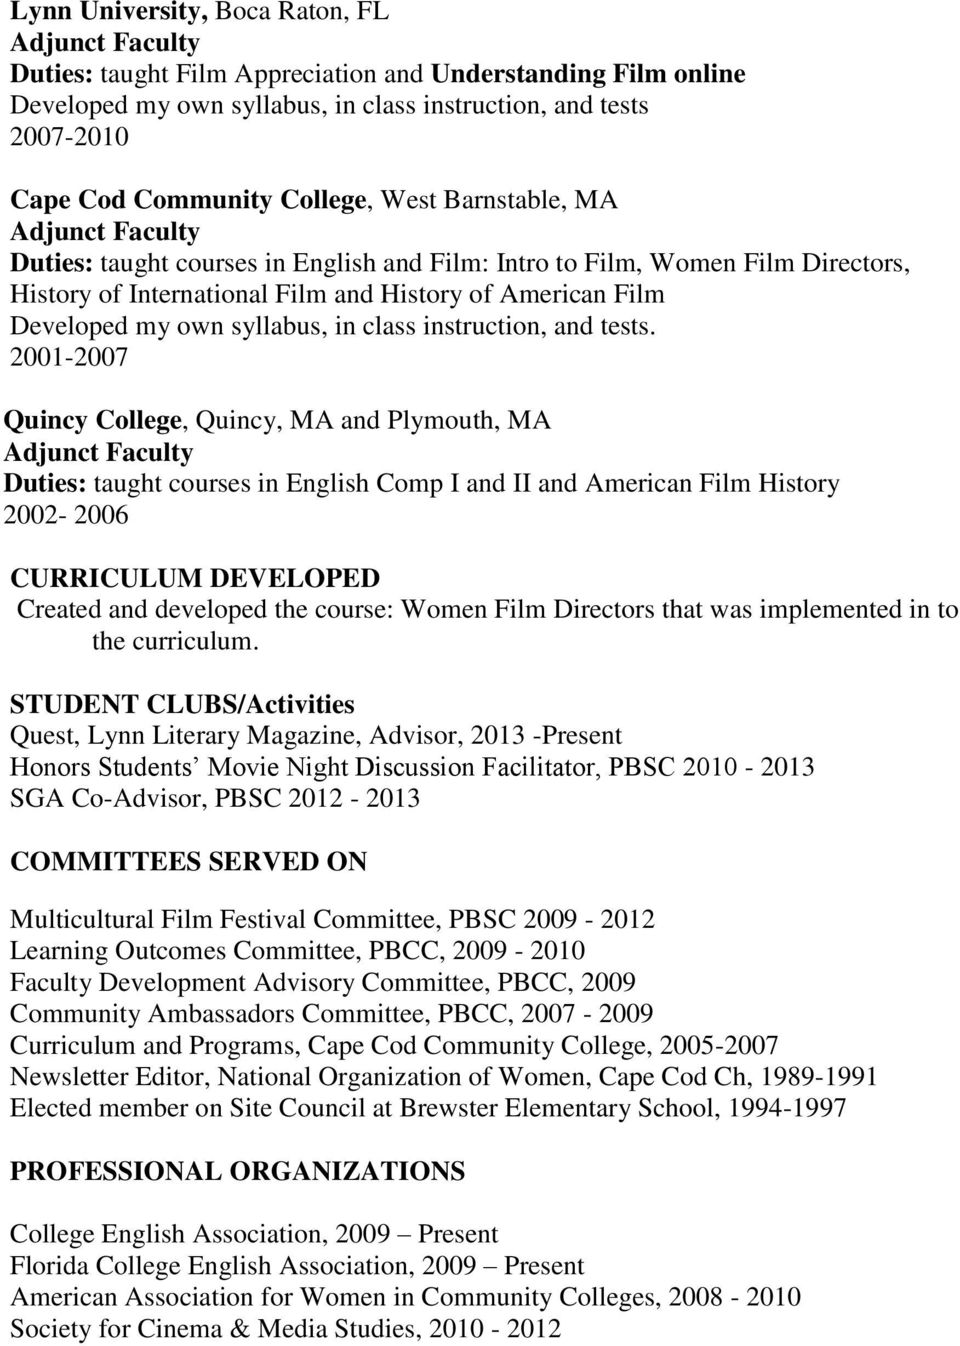 2001-2007 Quincy College, Quincy, MA and Plymouth, MA Duties: taught courses in English Comp I and II and American Film History 2002-2006 CURRICULUM DEVELOPED Created and developed the course: Women